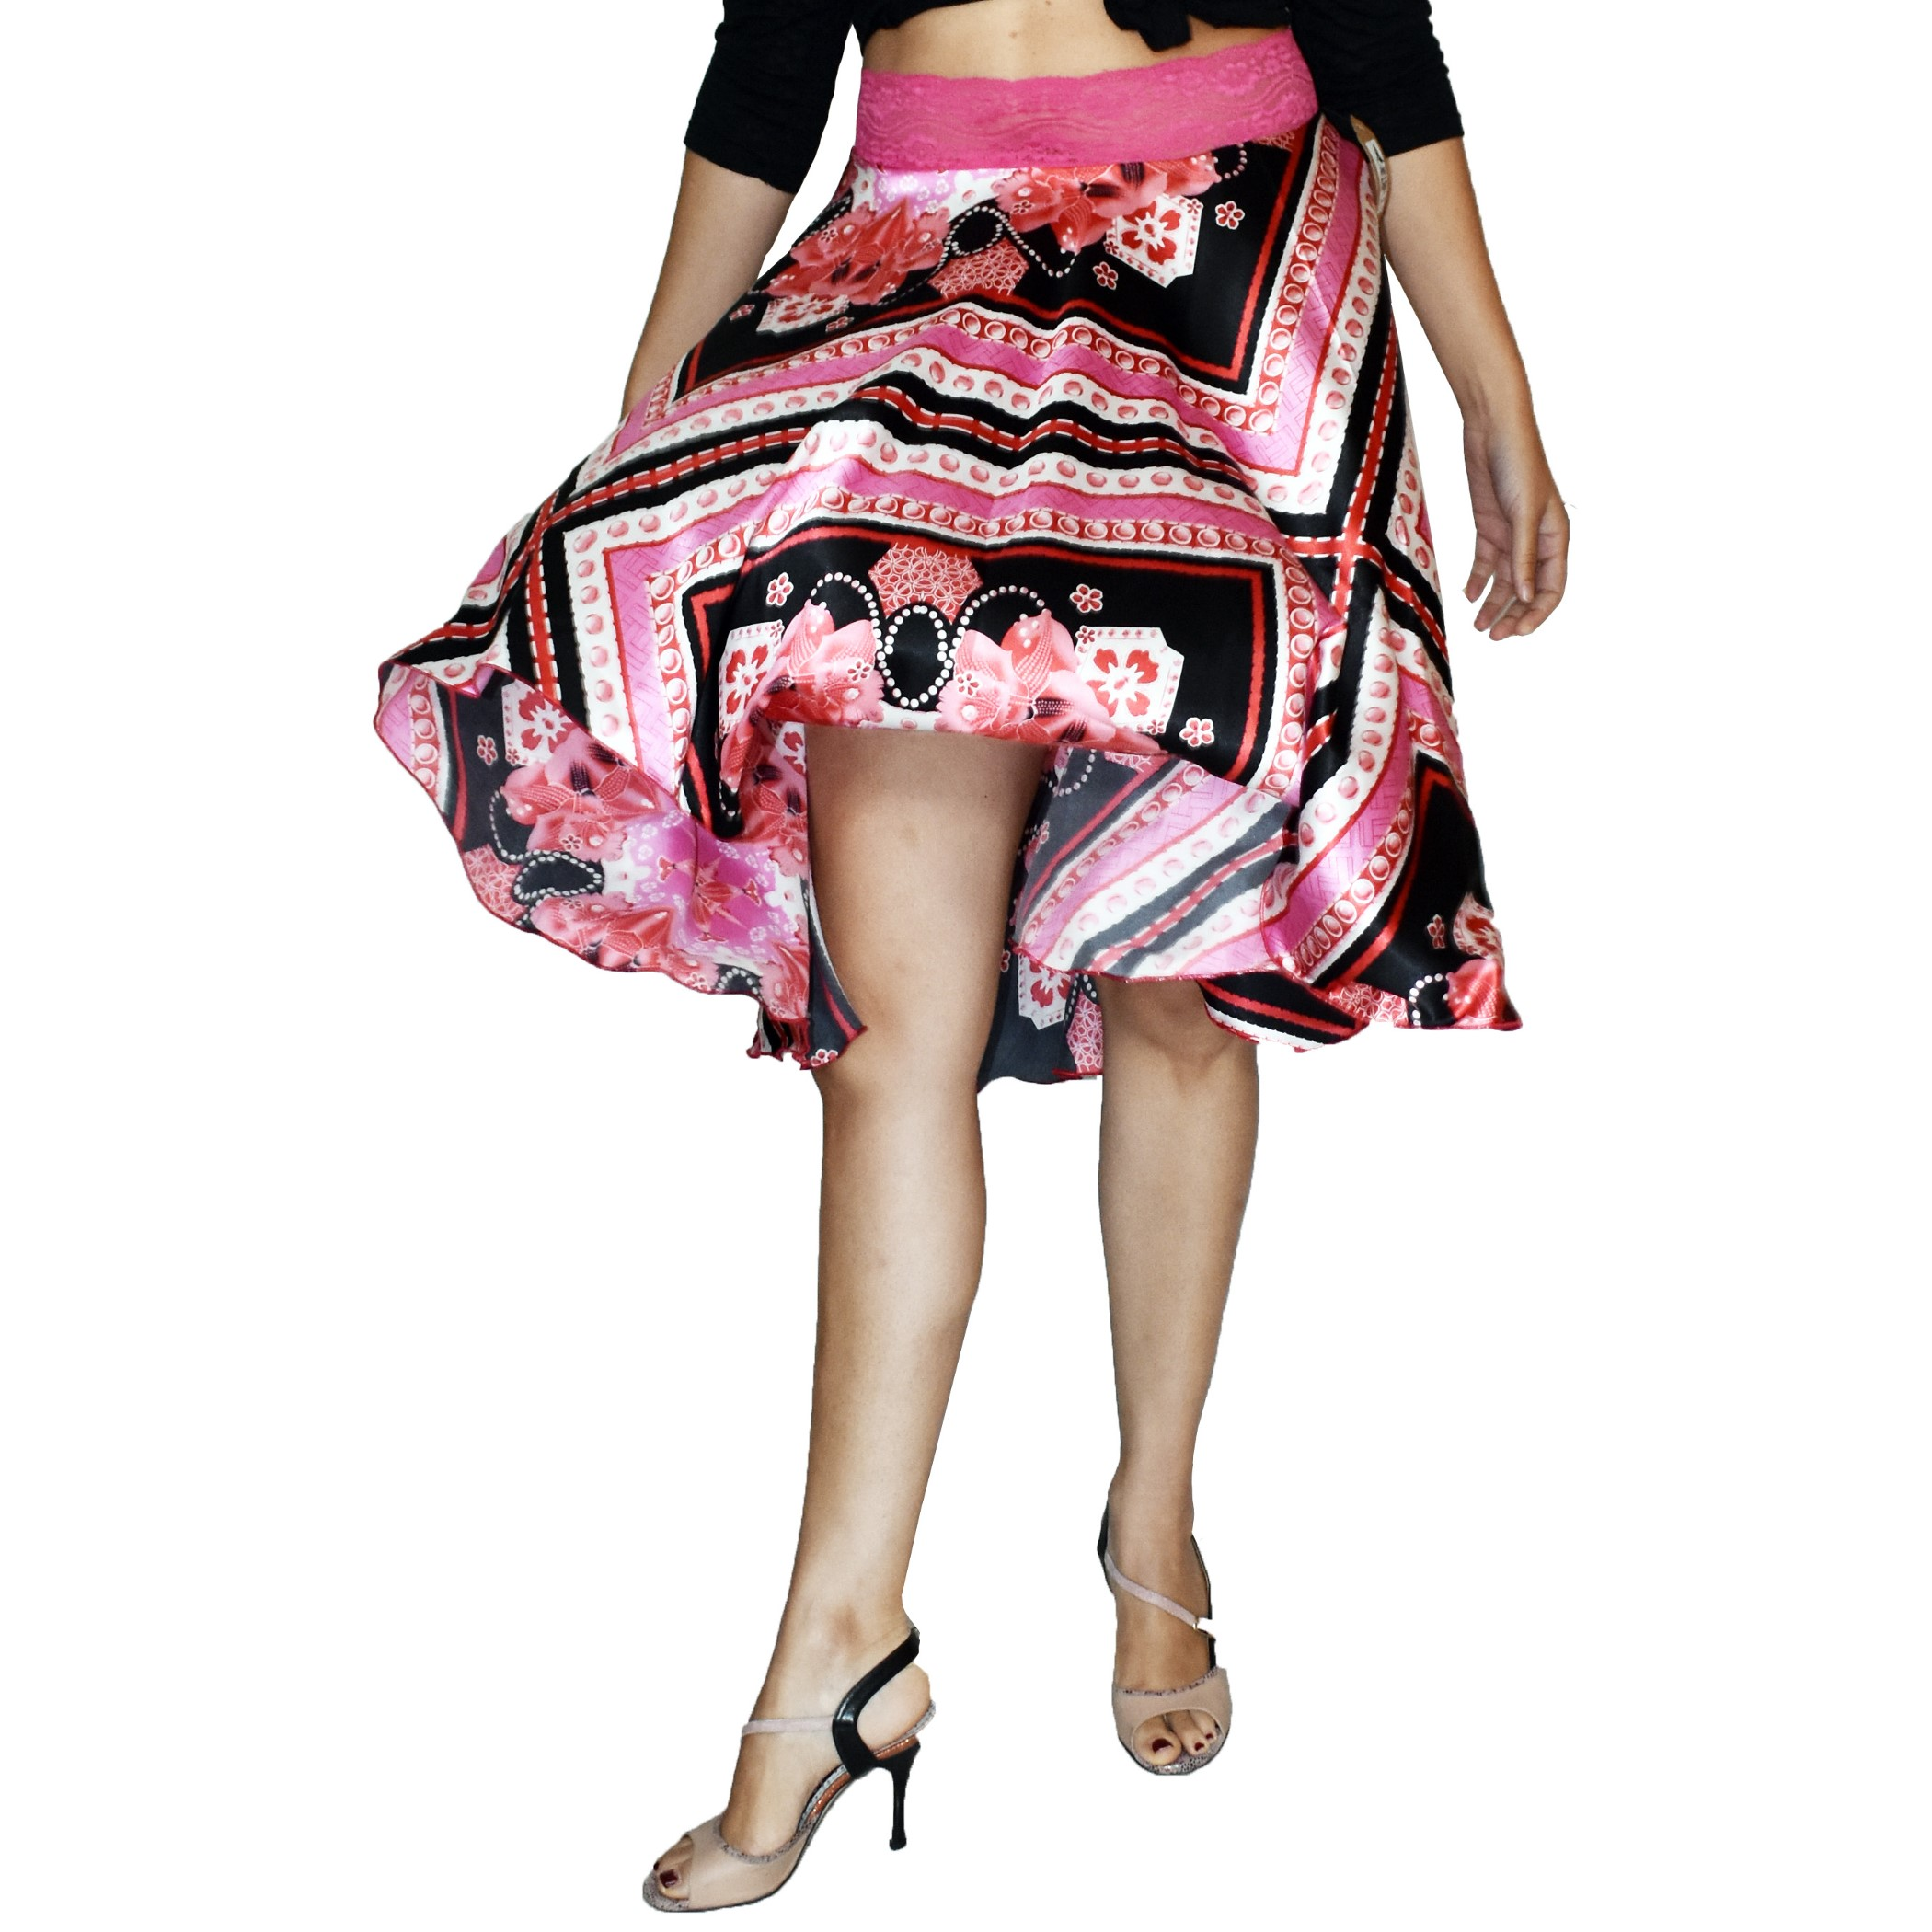 Tango skirt in small size